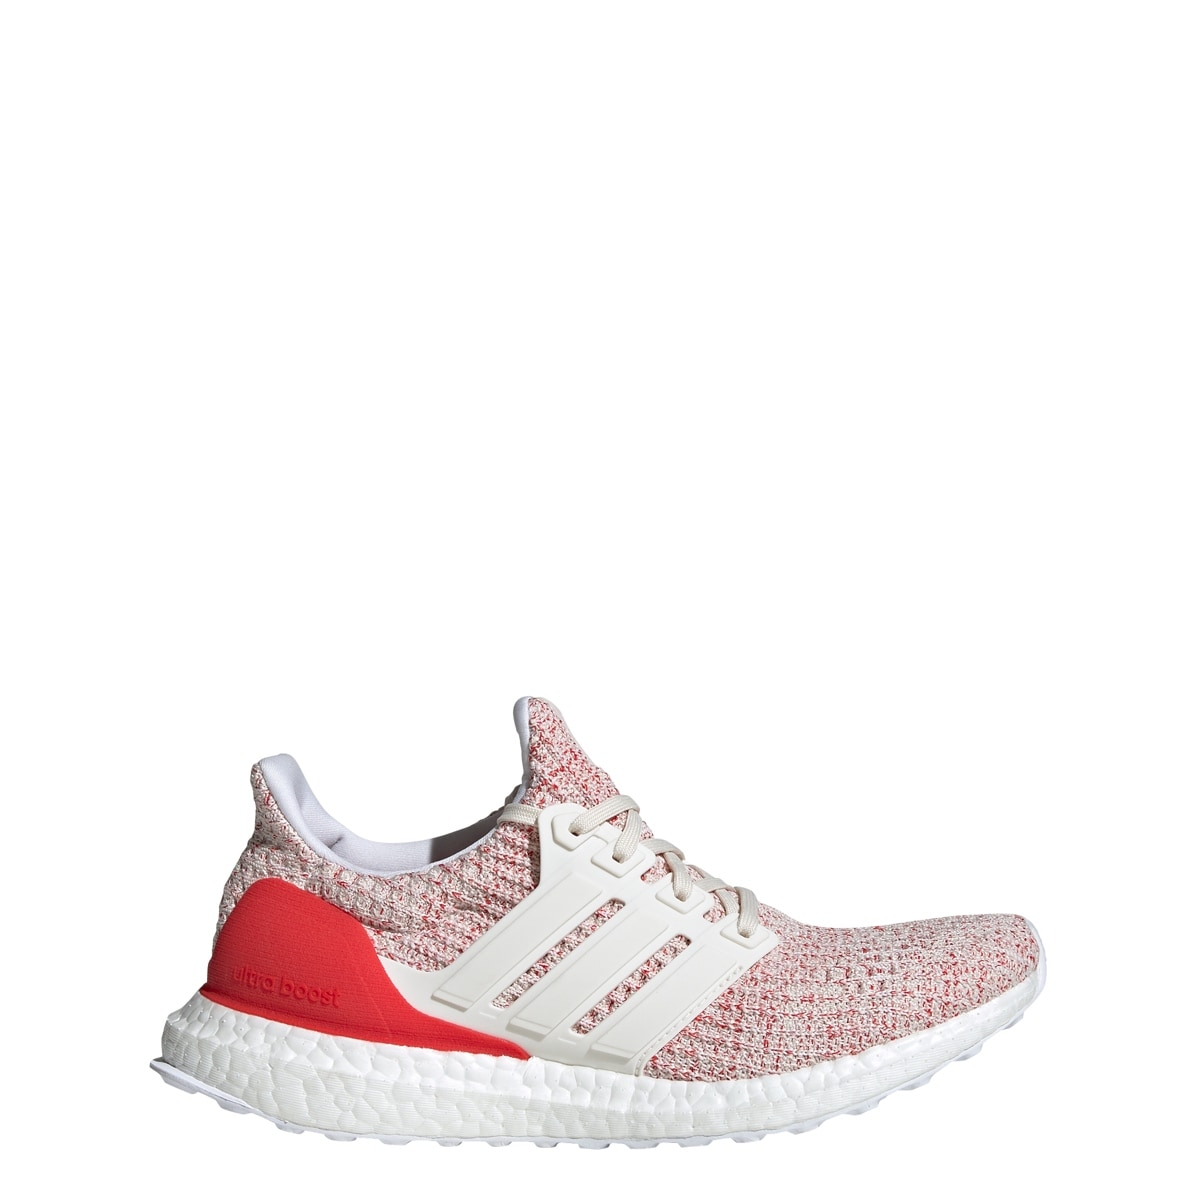 low priced 4b807 1301c Buy Adidas Womens Athletic Shoes Online at Overstock  Our Best Womens  Shoes Deals